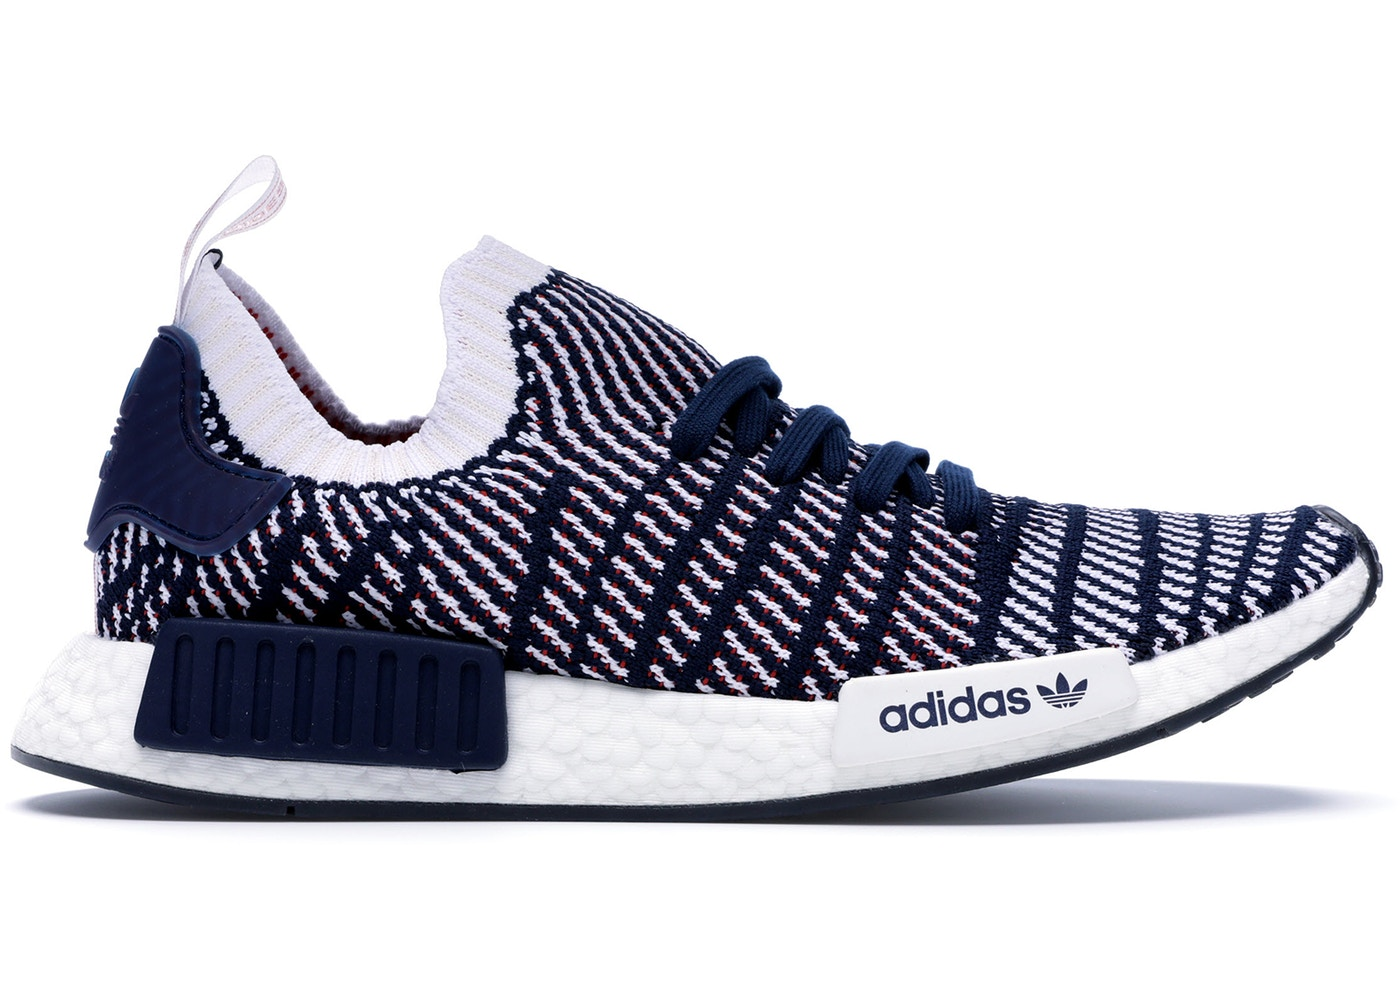 956518380bb adidas NMD R1 STLT Navy White Red - D96821